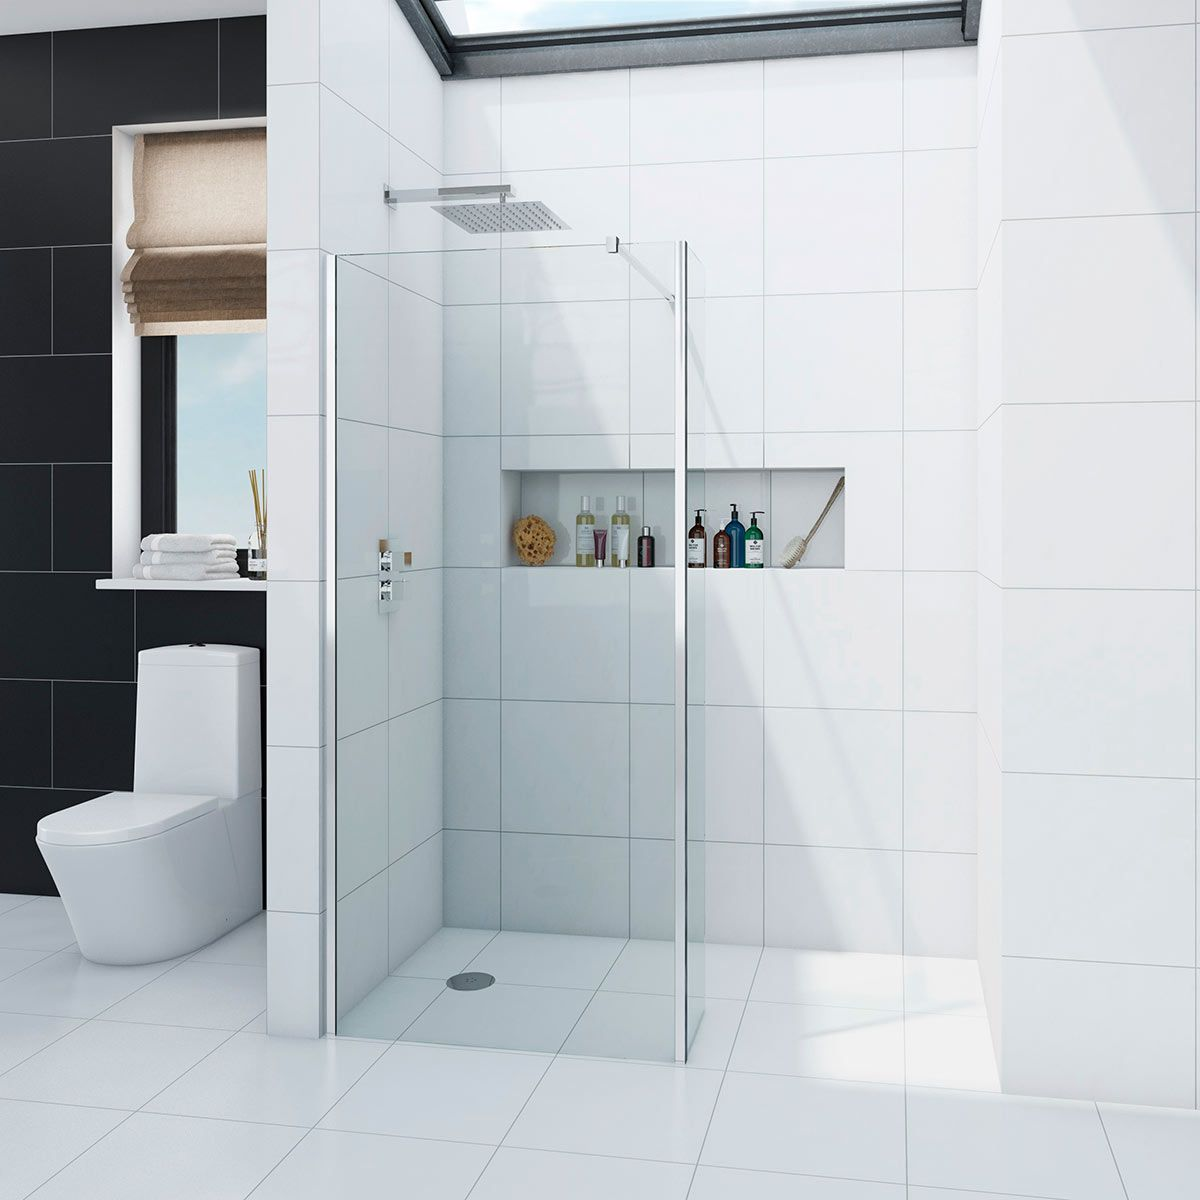 Orchard 8mm wet room glass panel with return panel | Pinterest | Wet ...